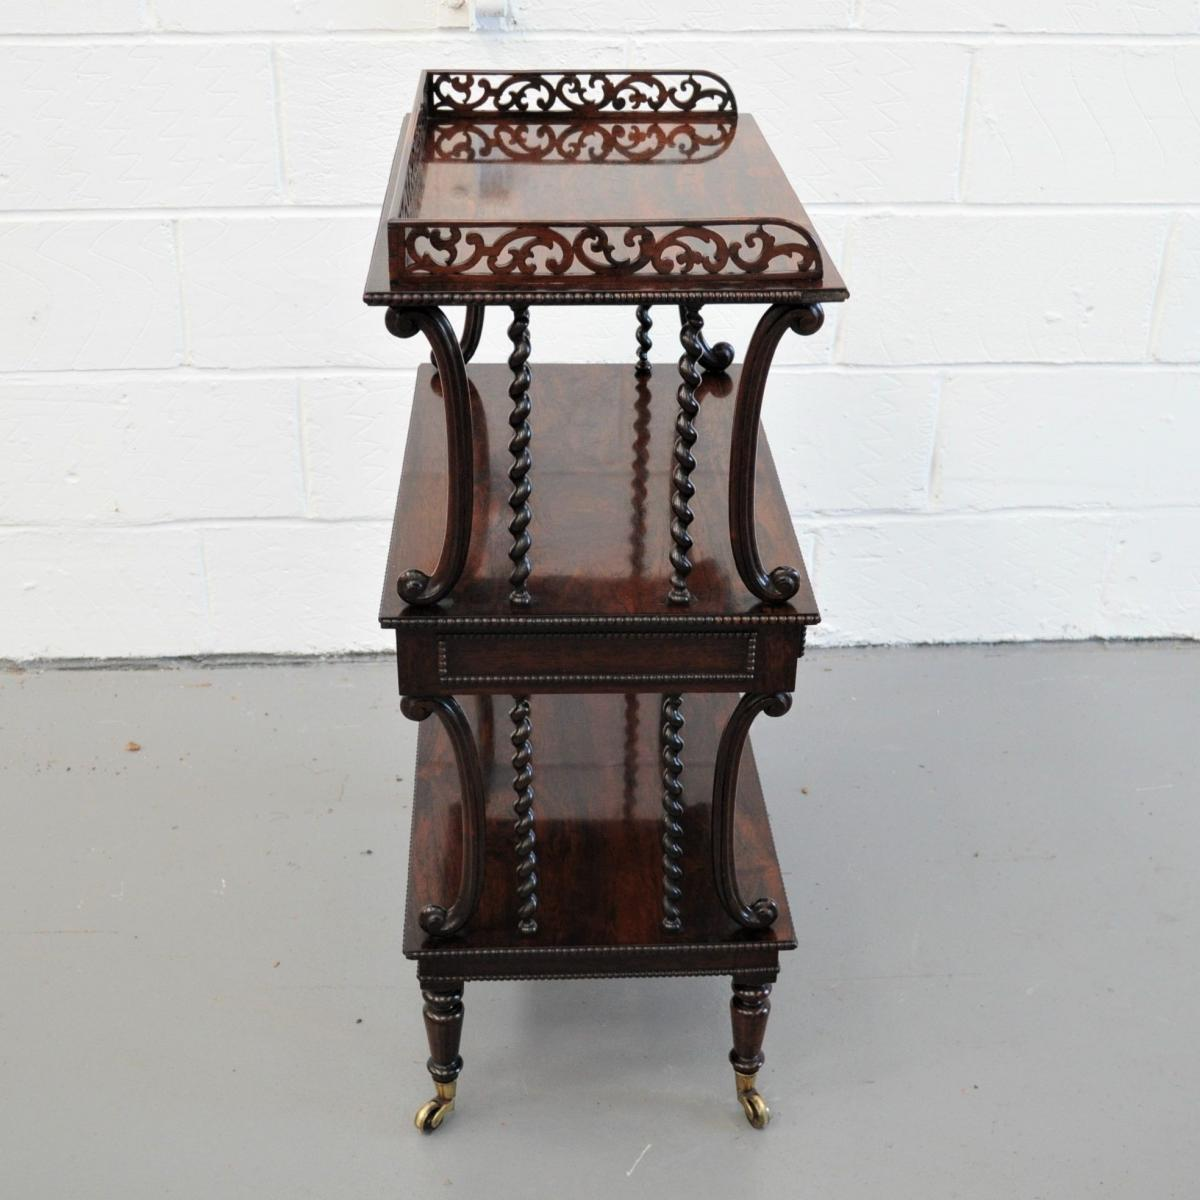 Rare and unusual Regency Etagere